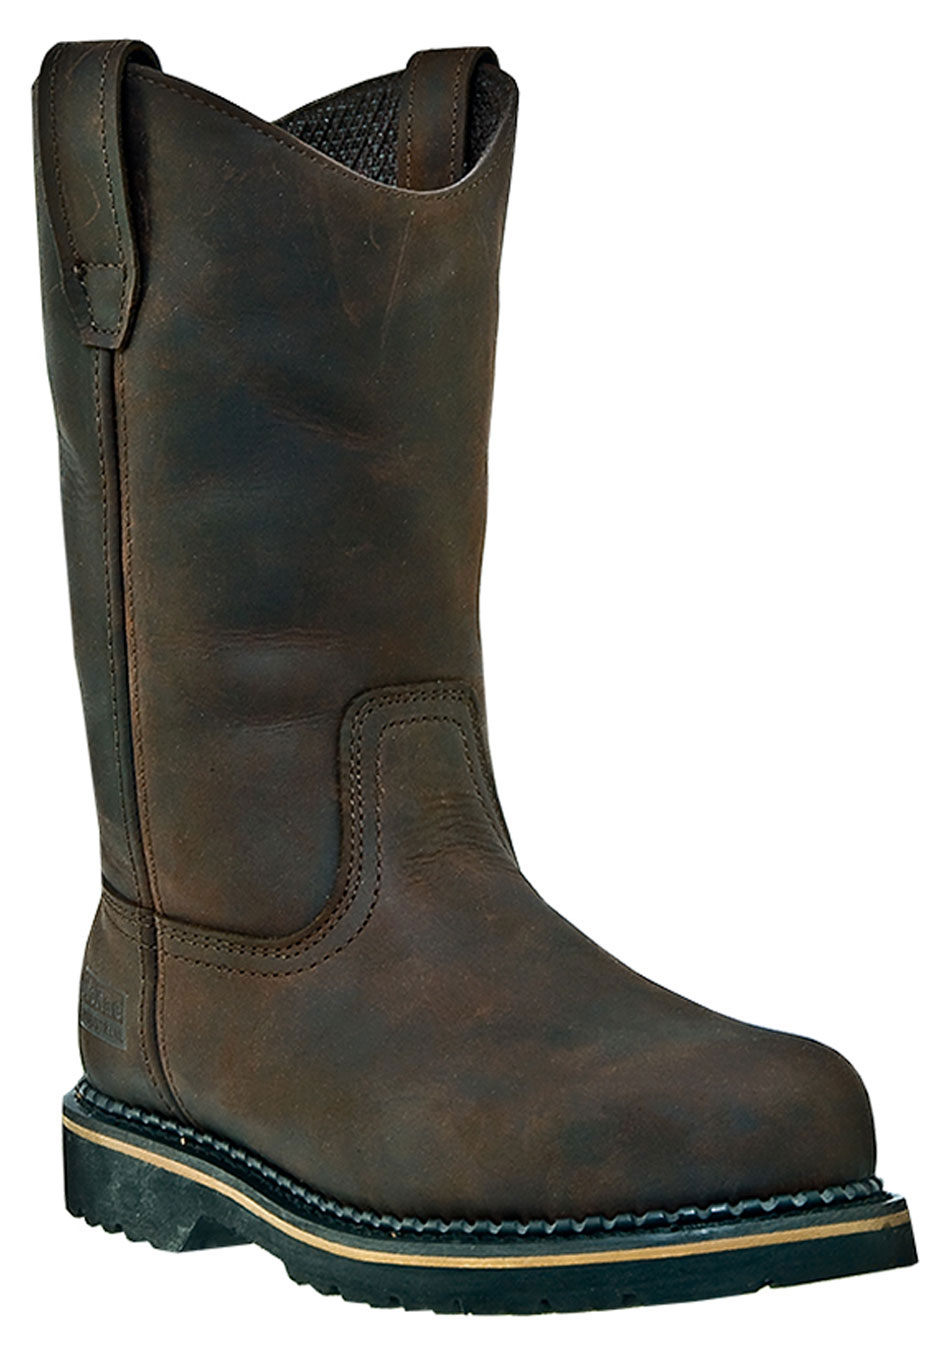 "McRae 11"" Steel Toe Wellington Boots,"